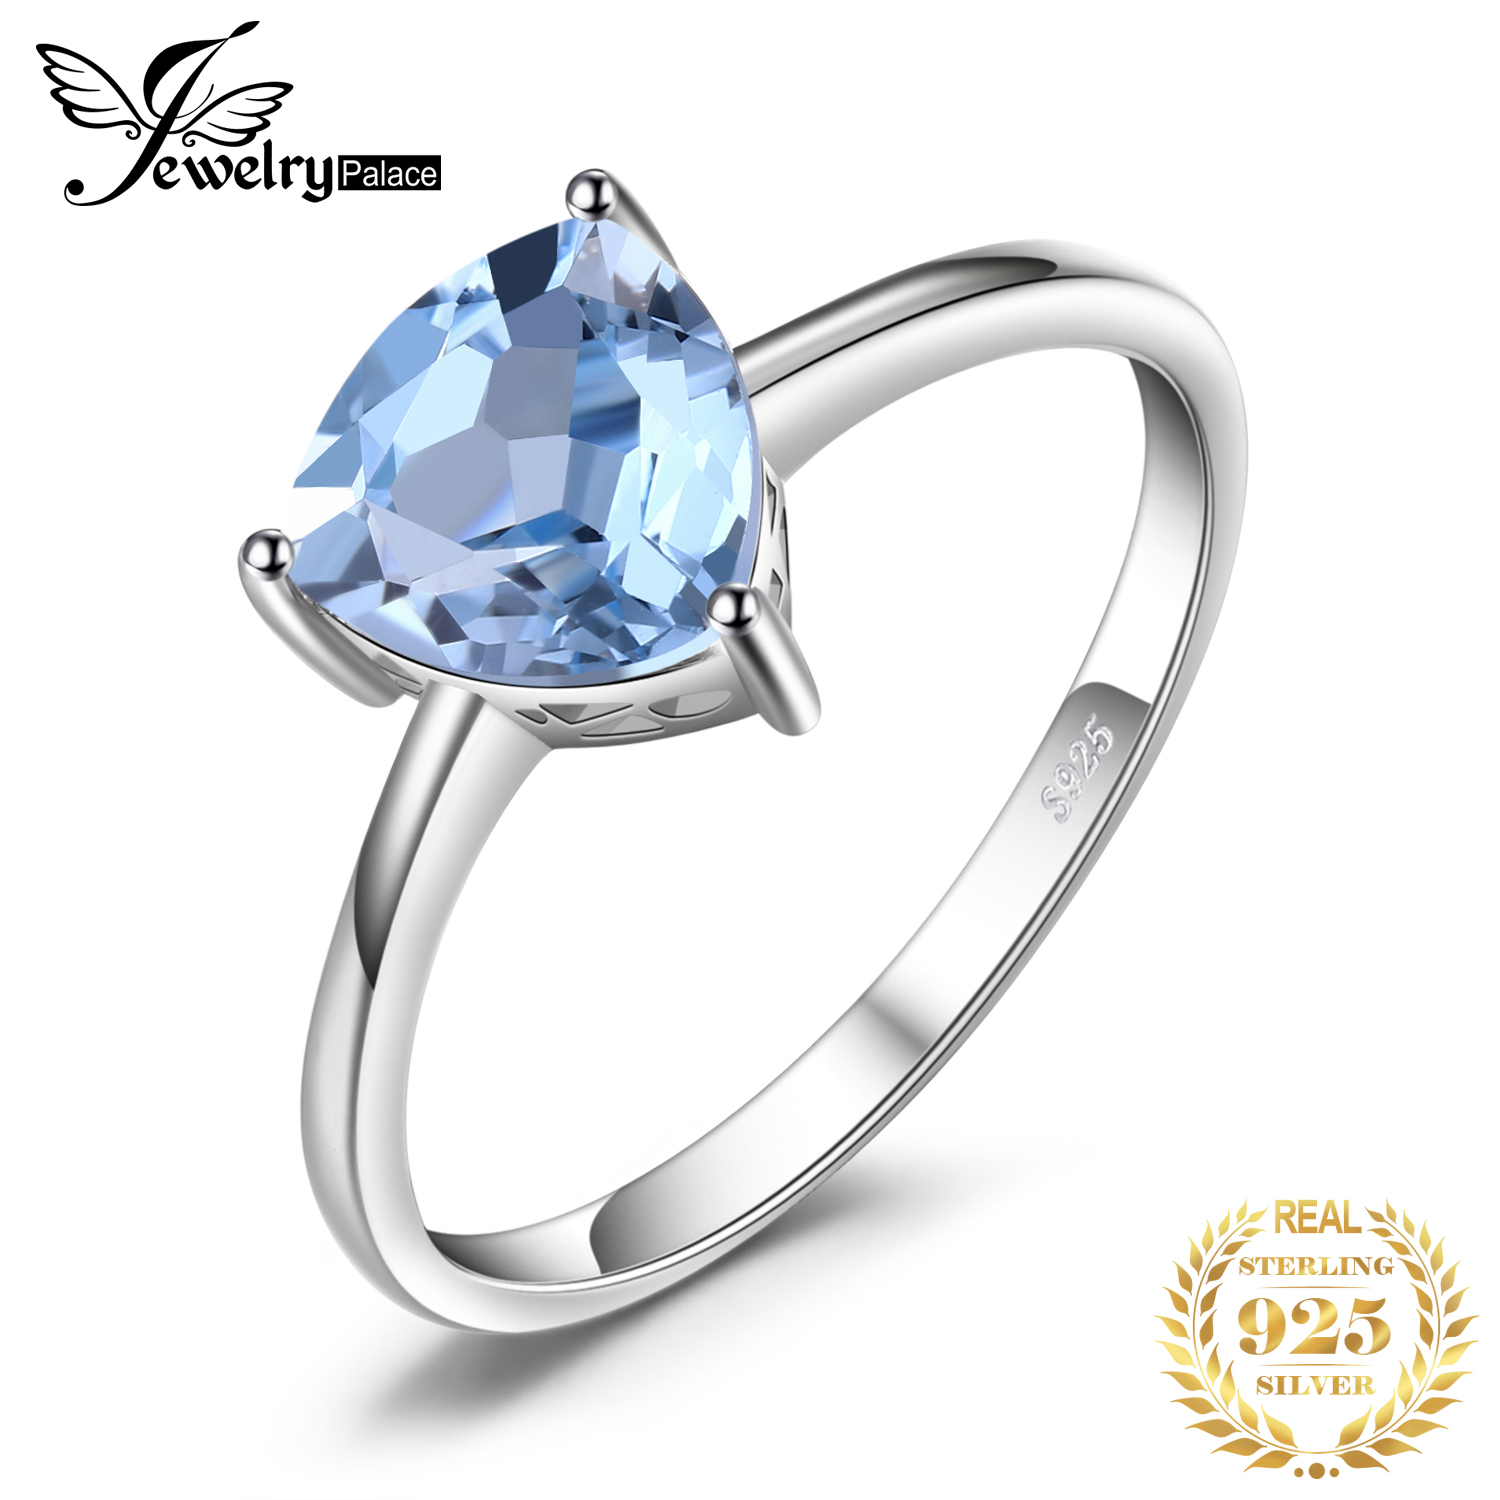 JewelryPalace Genuine Blue Topaz Ring Solitaire 925 Sterling Silver Rings for Women Engagement Ring Silver 925 Gemstones Jewelry-in Rings from Jewelry & Accessories